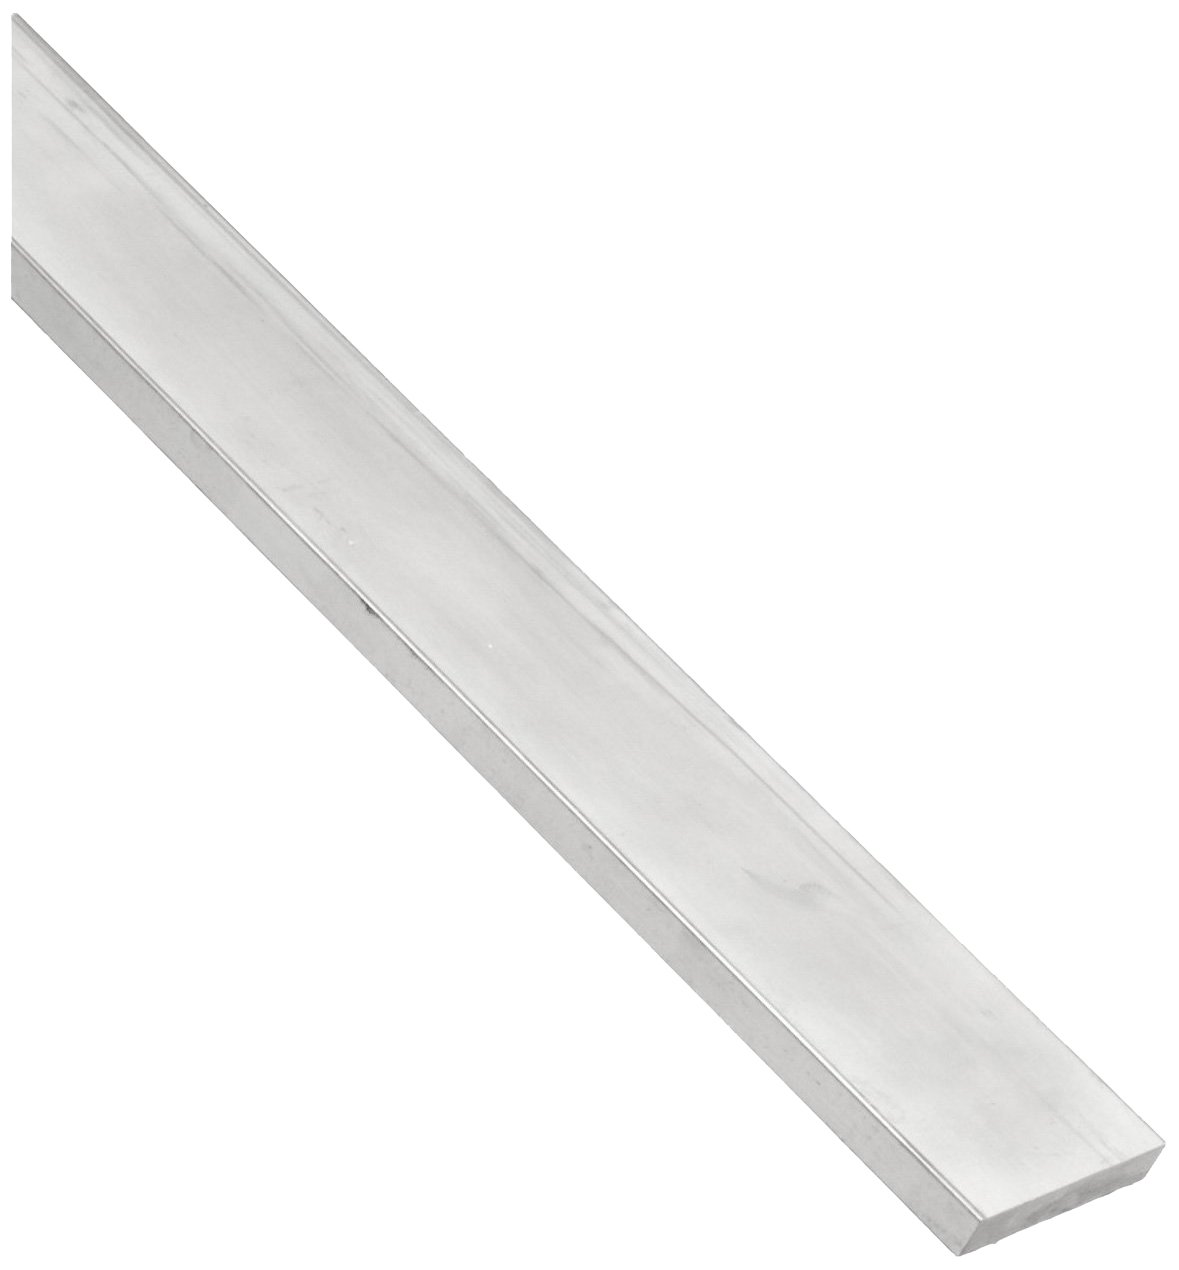 7075 Aluminum Rectangular Bar, Unpolished (Mill) Finish, 1/4'' Thickness, 1'' Width, 36'' Length by Small Parts